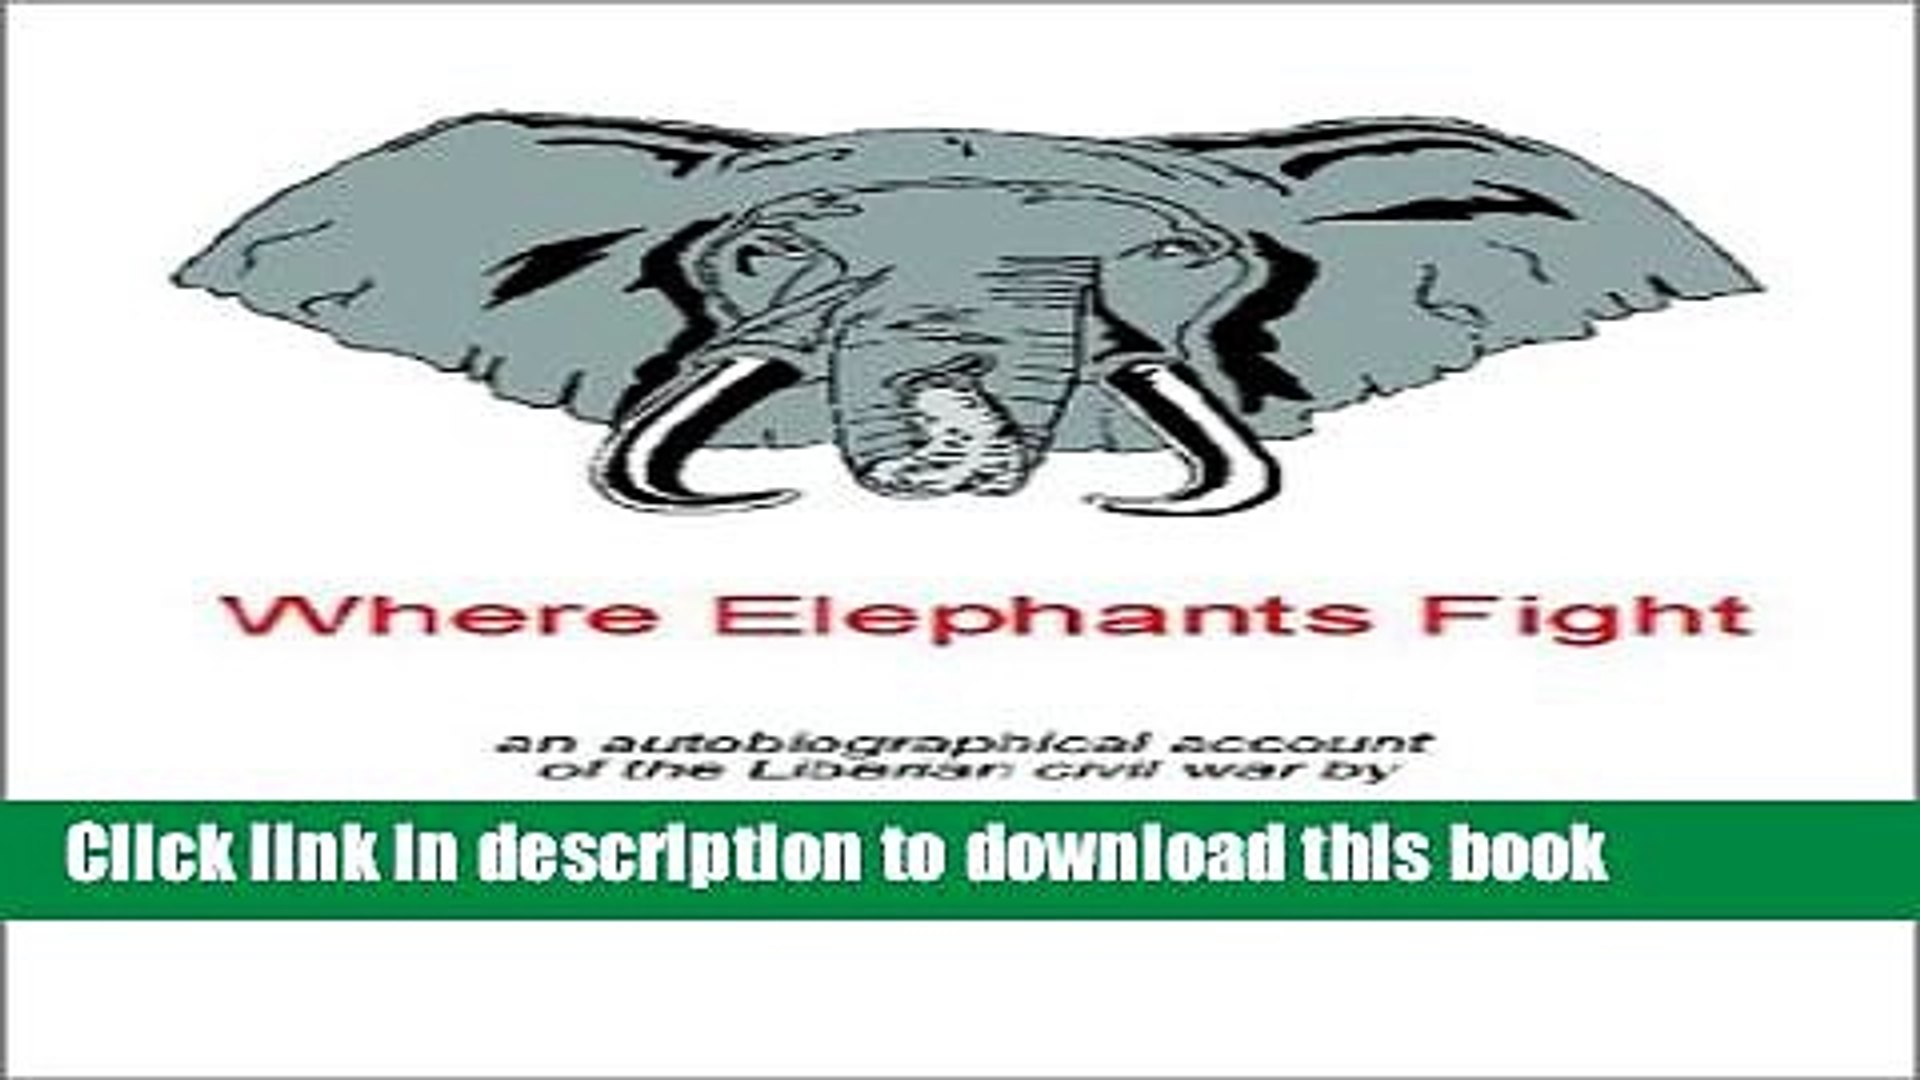 An Autobiographical Account of the Liberian Civil War Where Elephants Fight